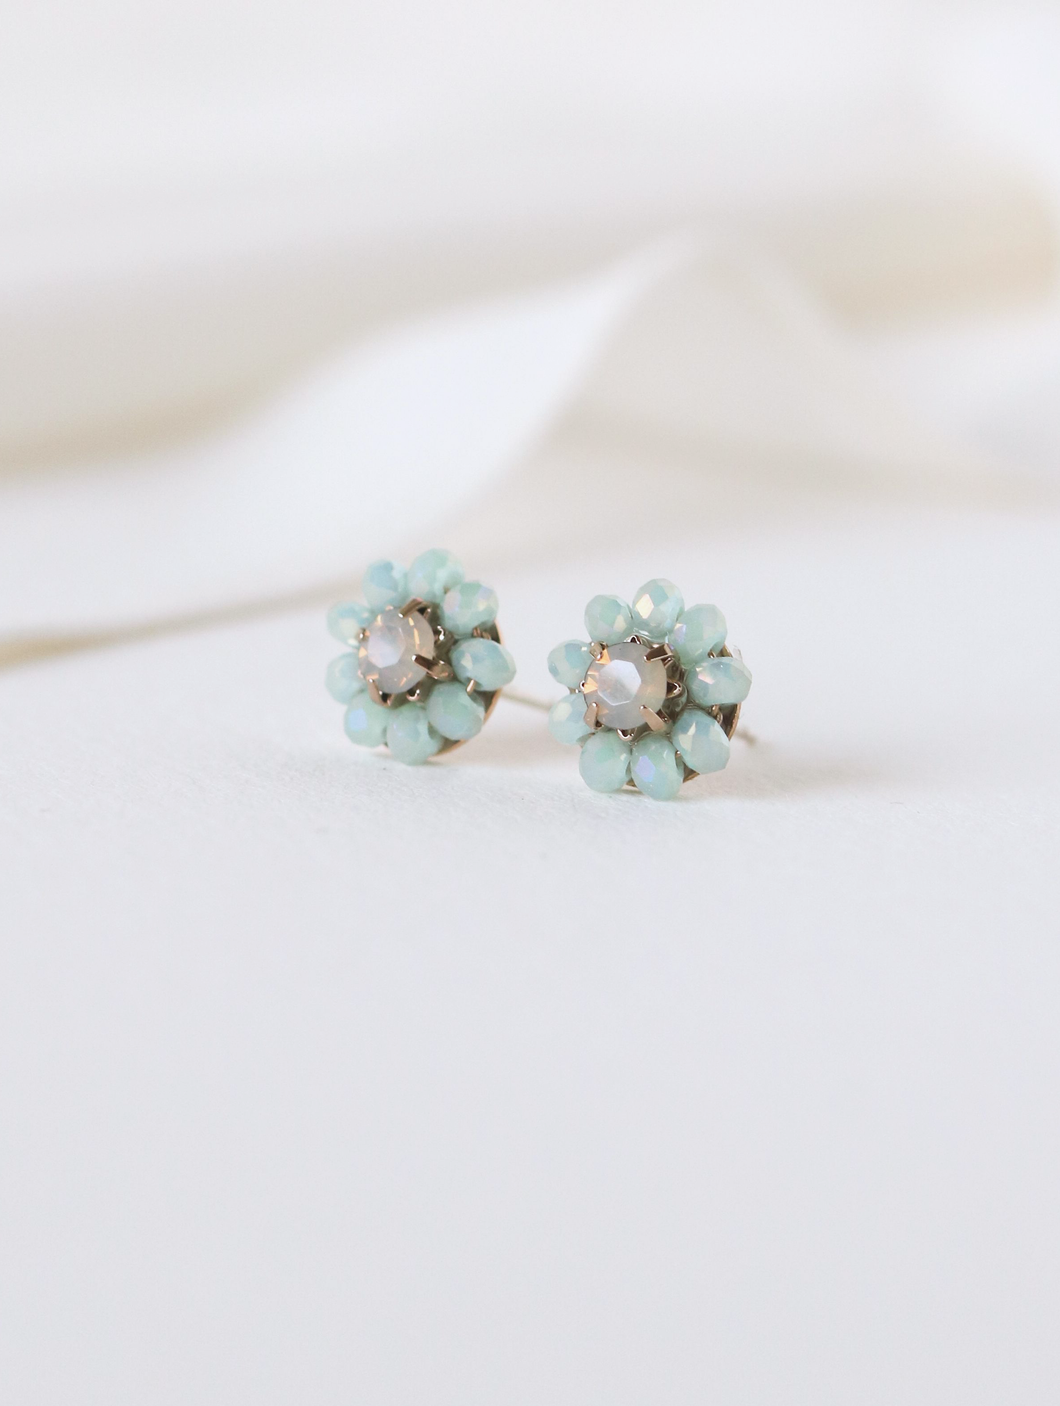 Forget Me Not Stud Earrings - Mint